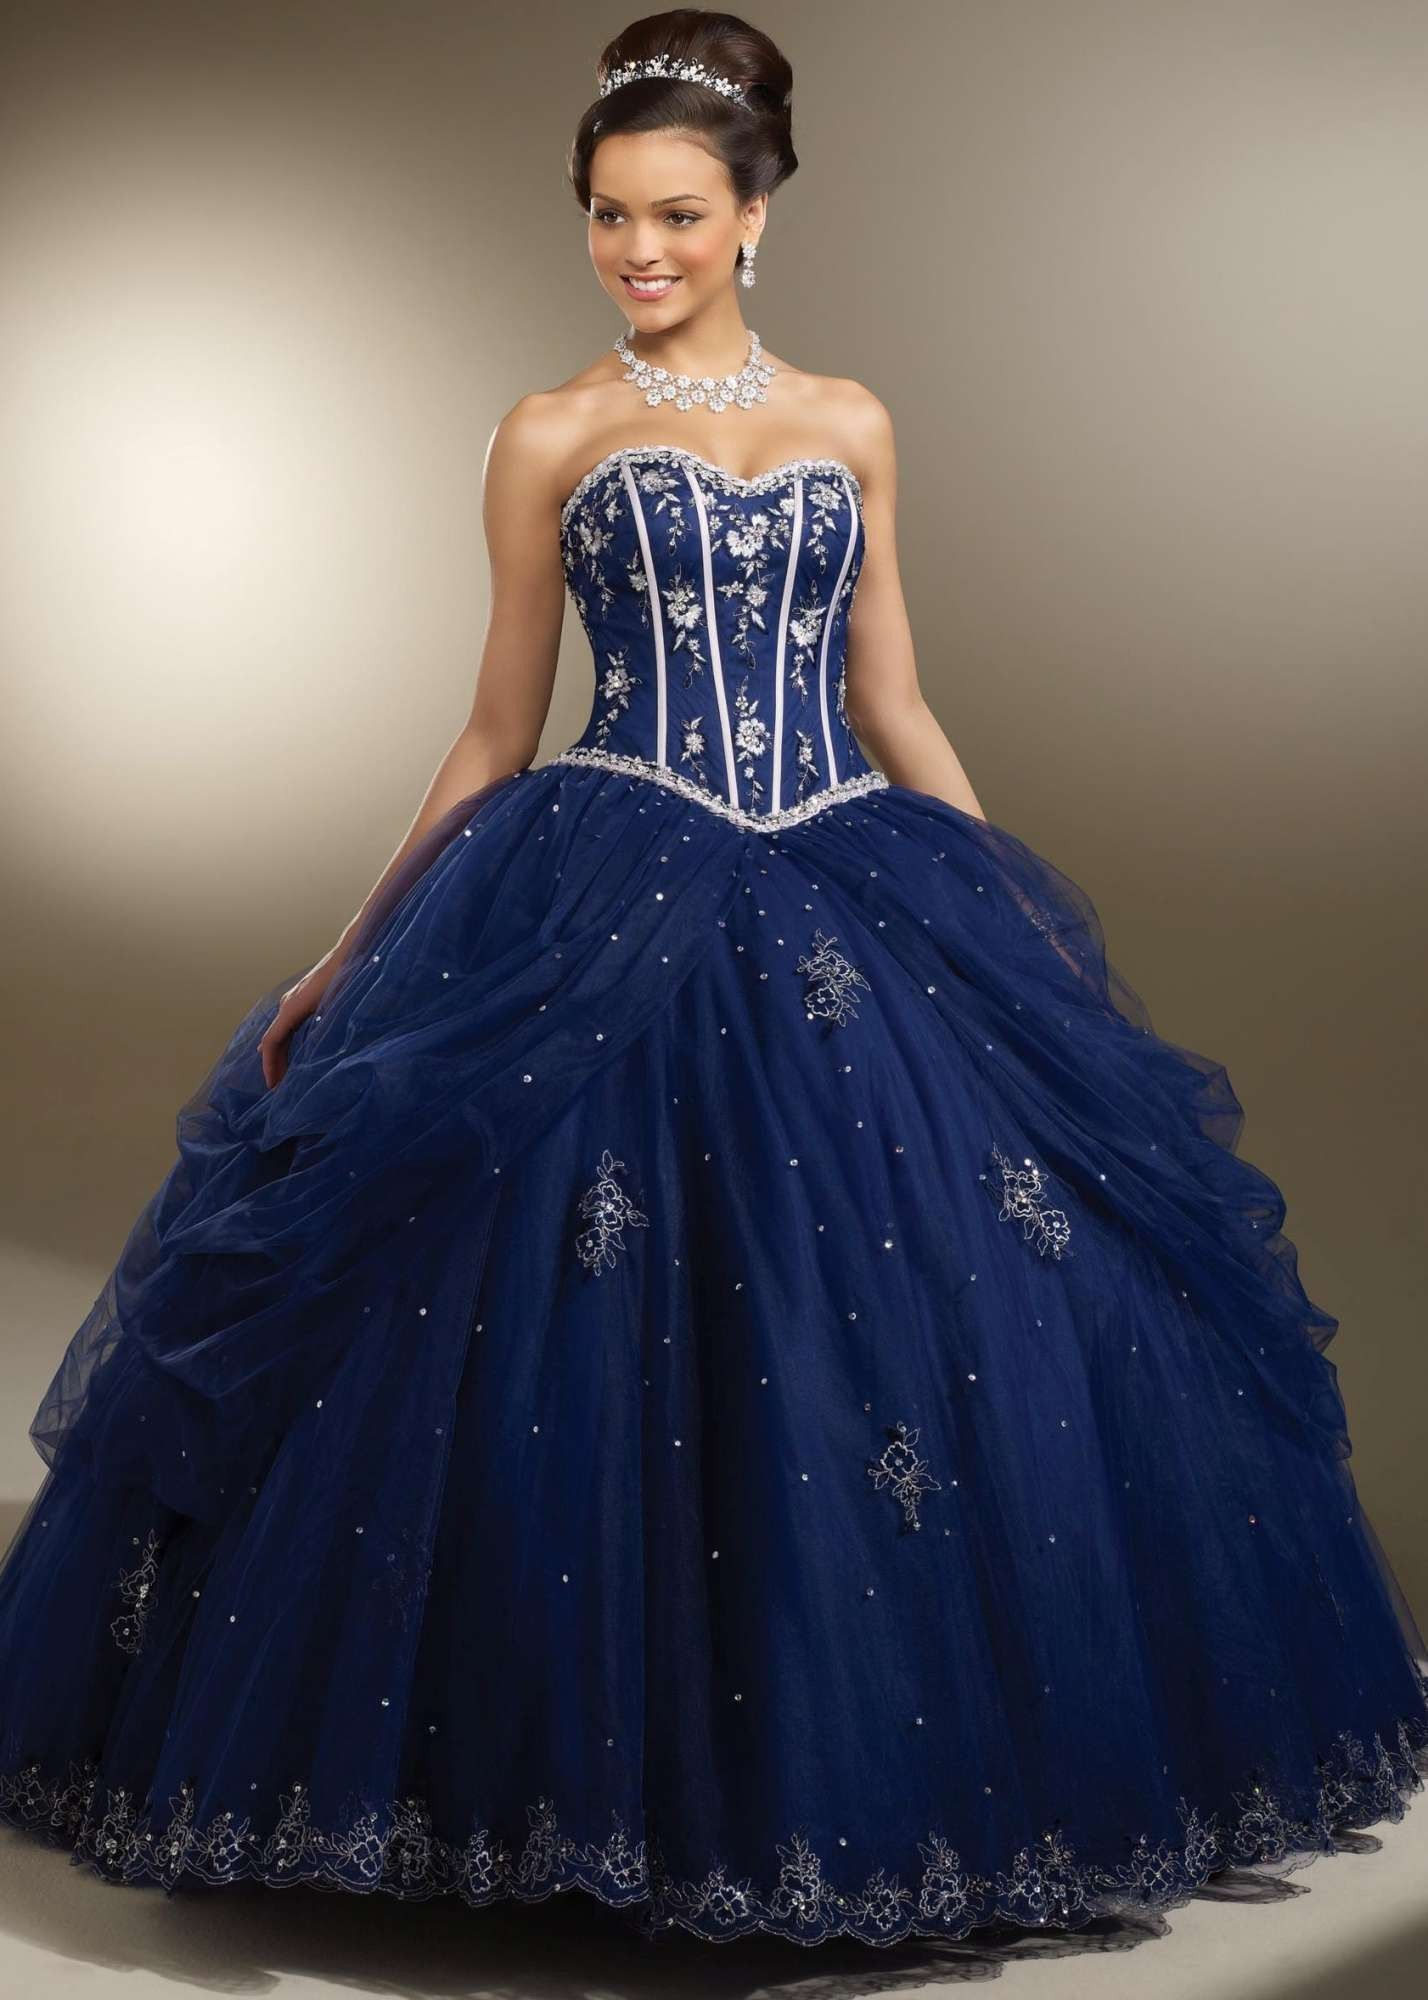 Weddings & Events Loyal Royal Blue Vestido Quinceanera Dresses 2019 Ball Gown Sweetheart Organza Beaded Crystal Detachable Skirt Cheap Sweet 16 Dresses Beautiful And Charming